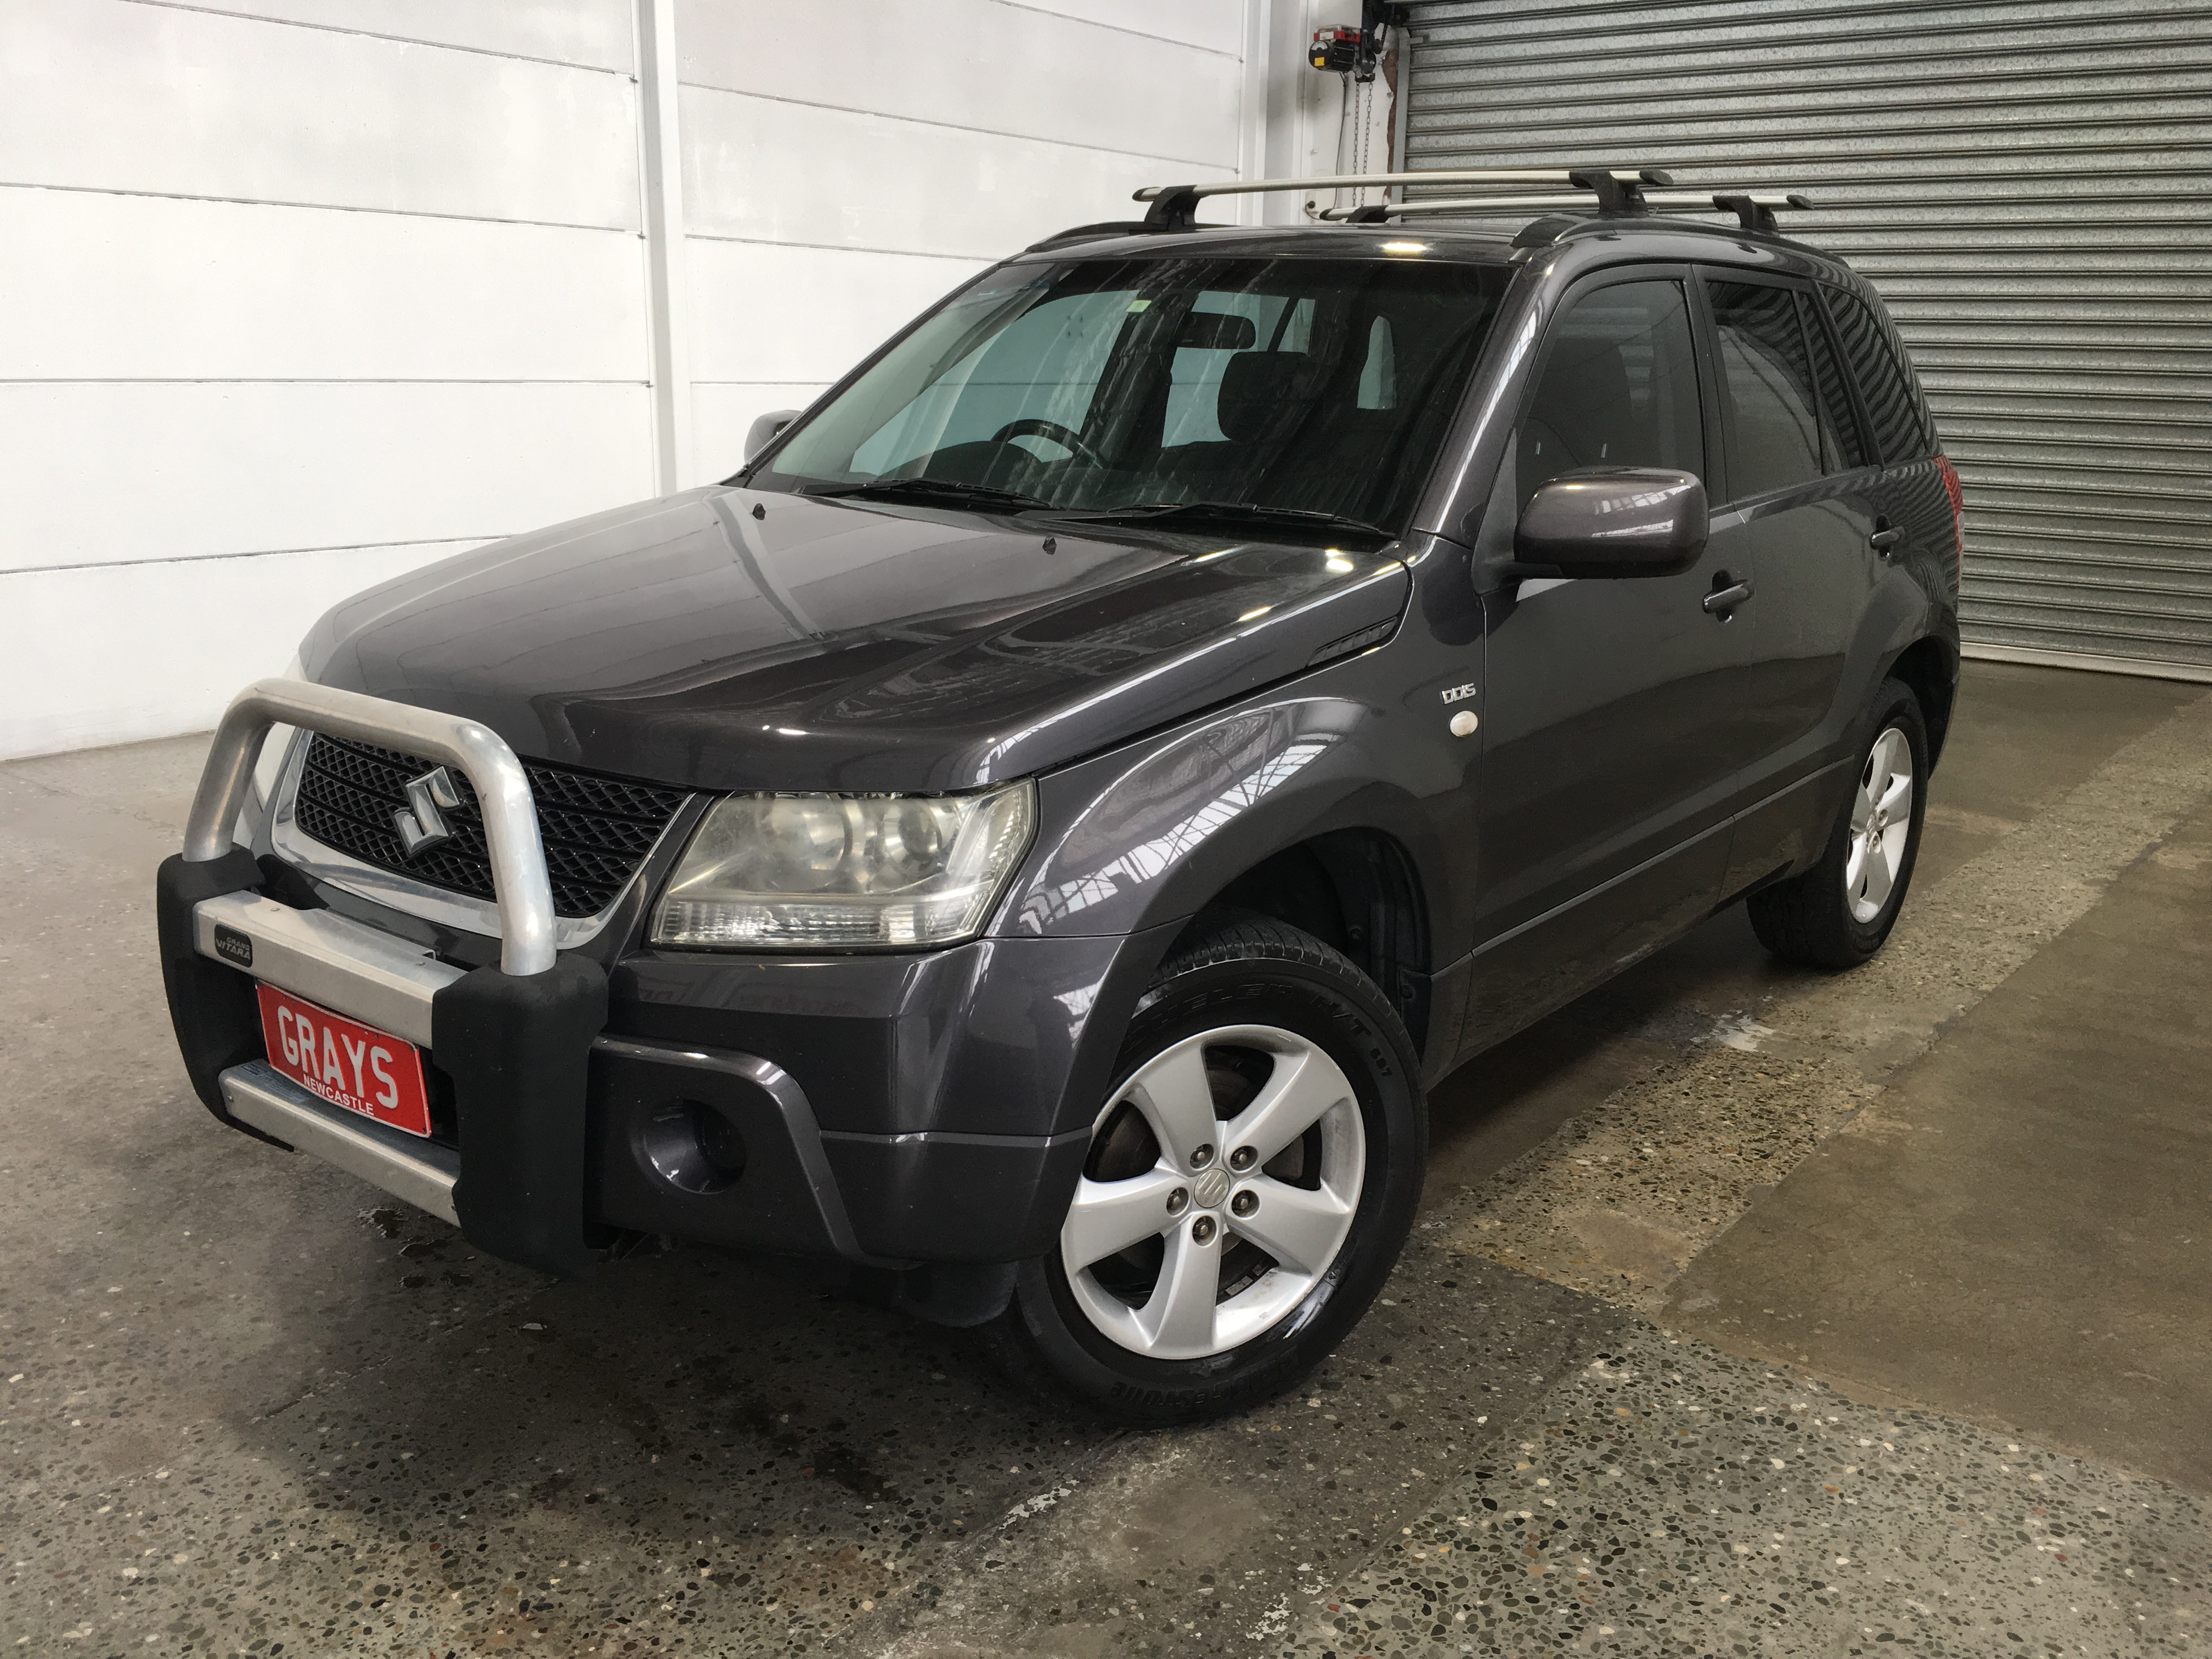 2010 Suzuki Grand Vitara (4x4) JT Turbo Diesel Manual Wagon